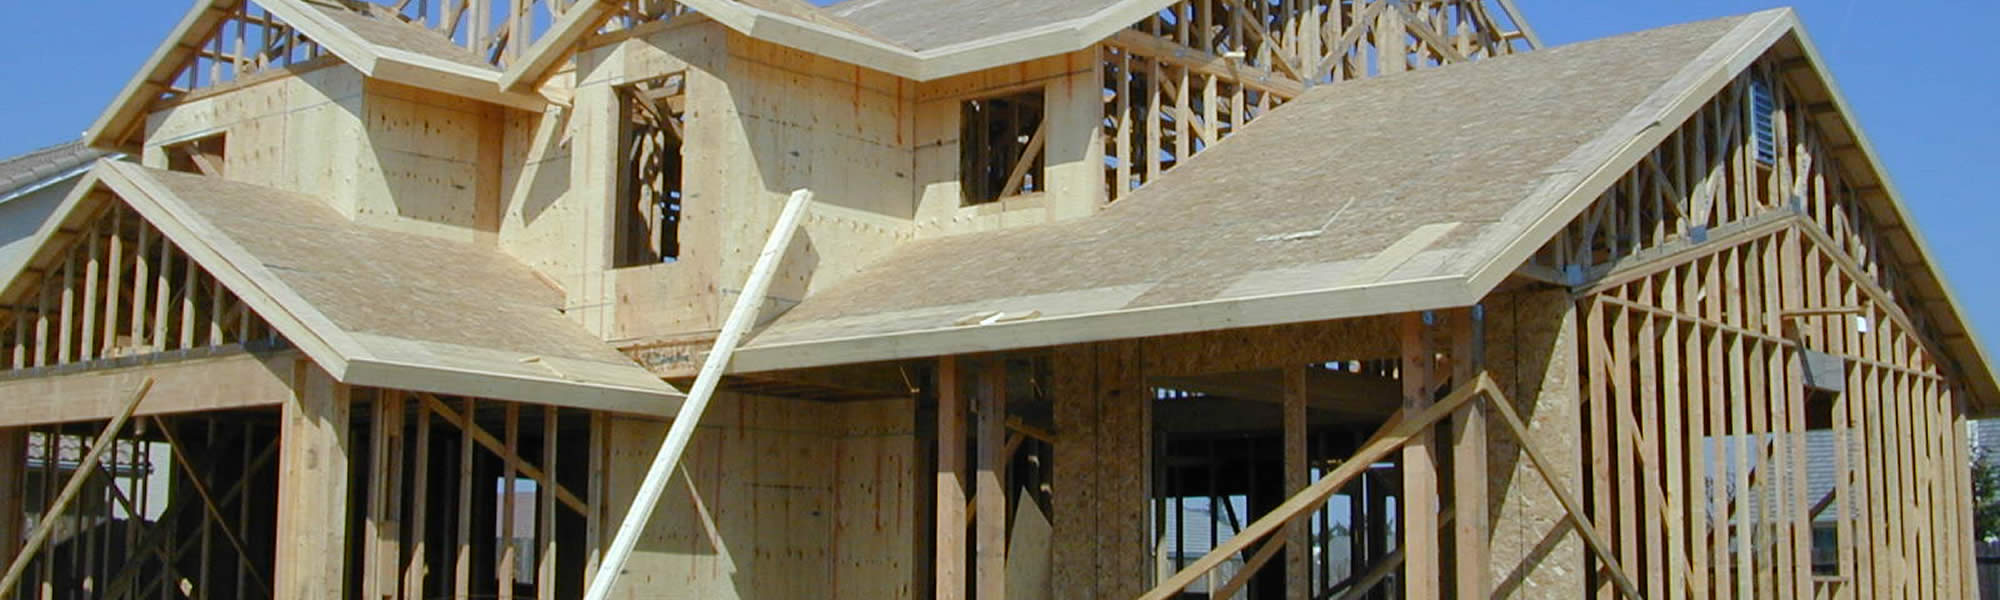 Remodeling and Construction Fond du Lac WI